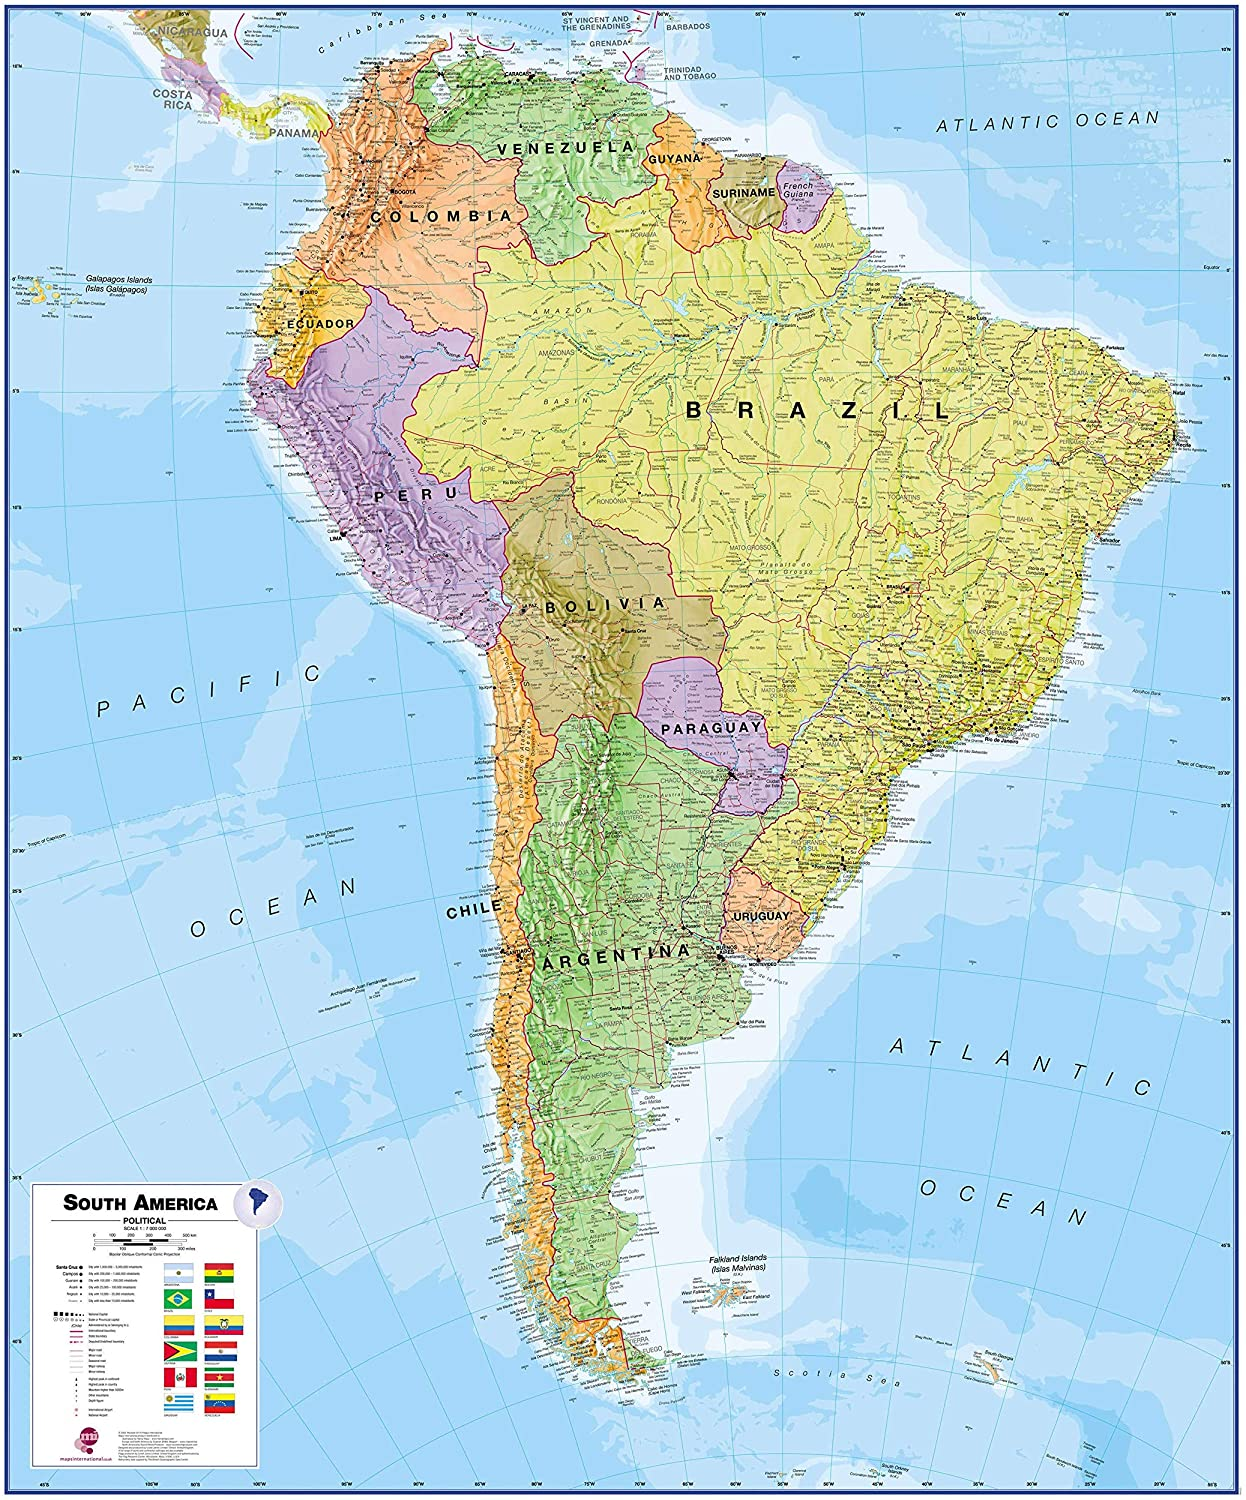 Maps International Large Political South America Wall Map - Laminated - 47 x 39